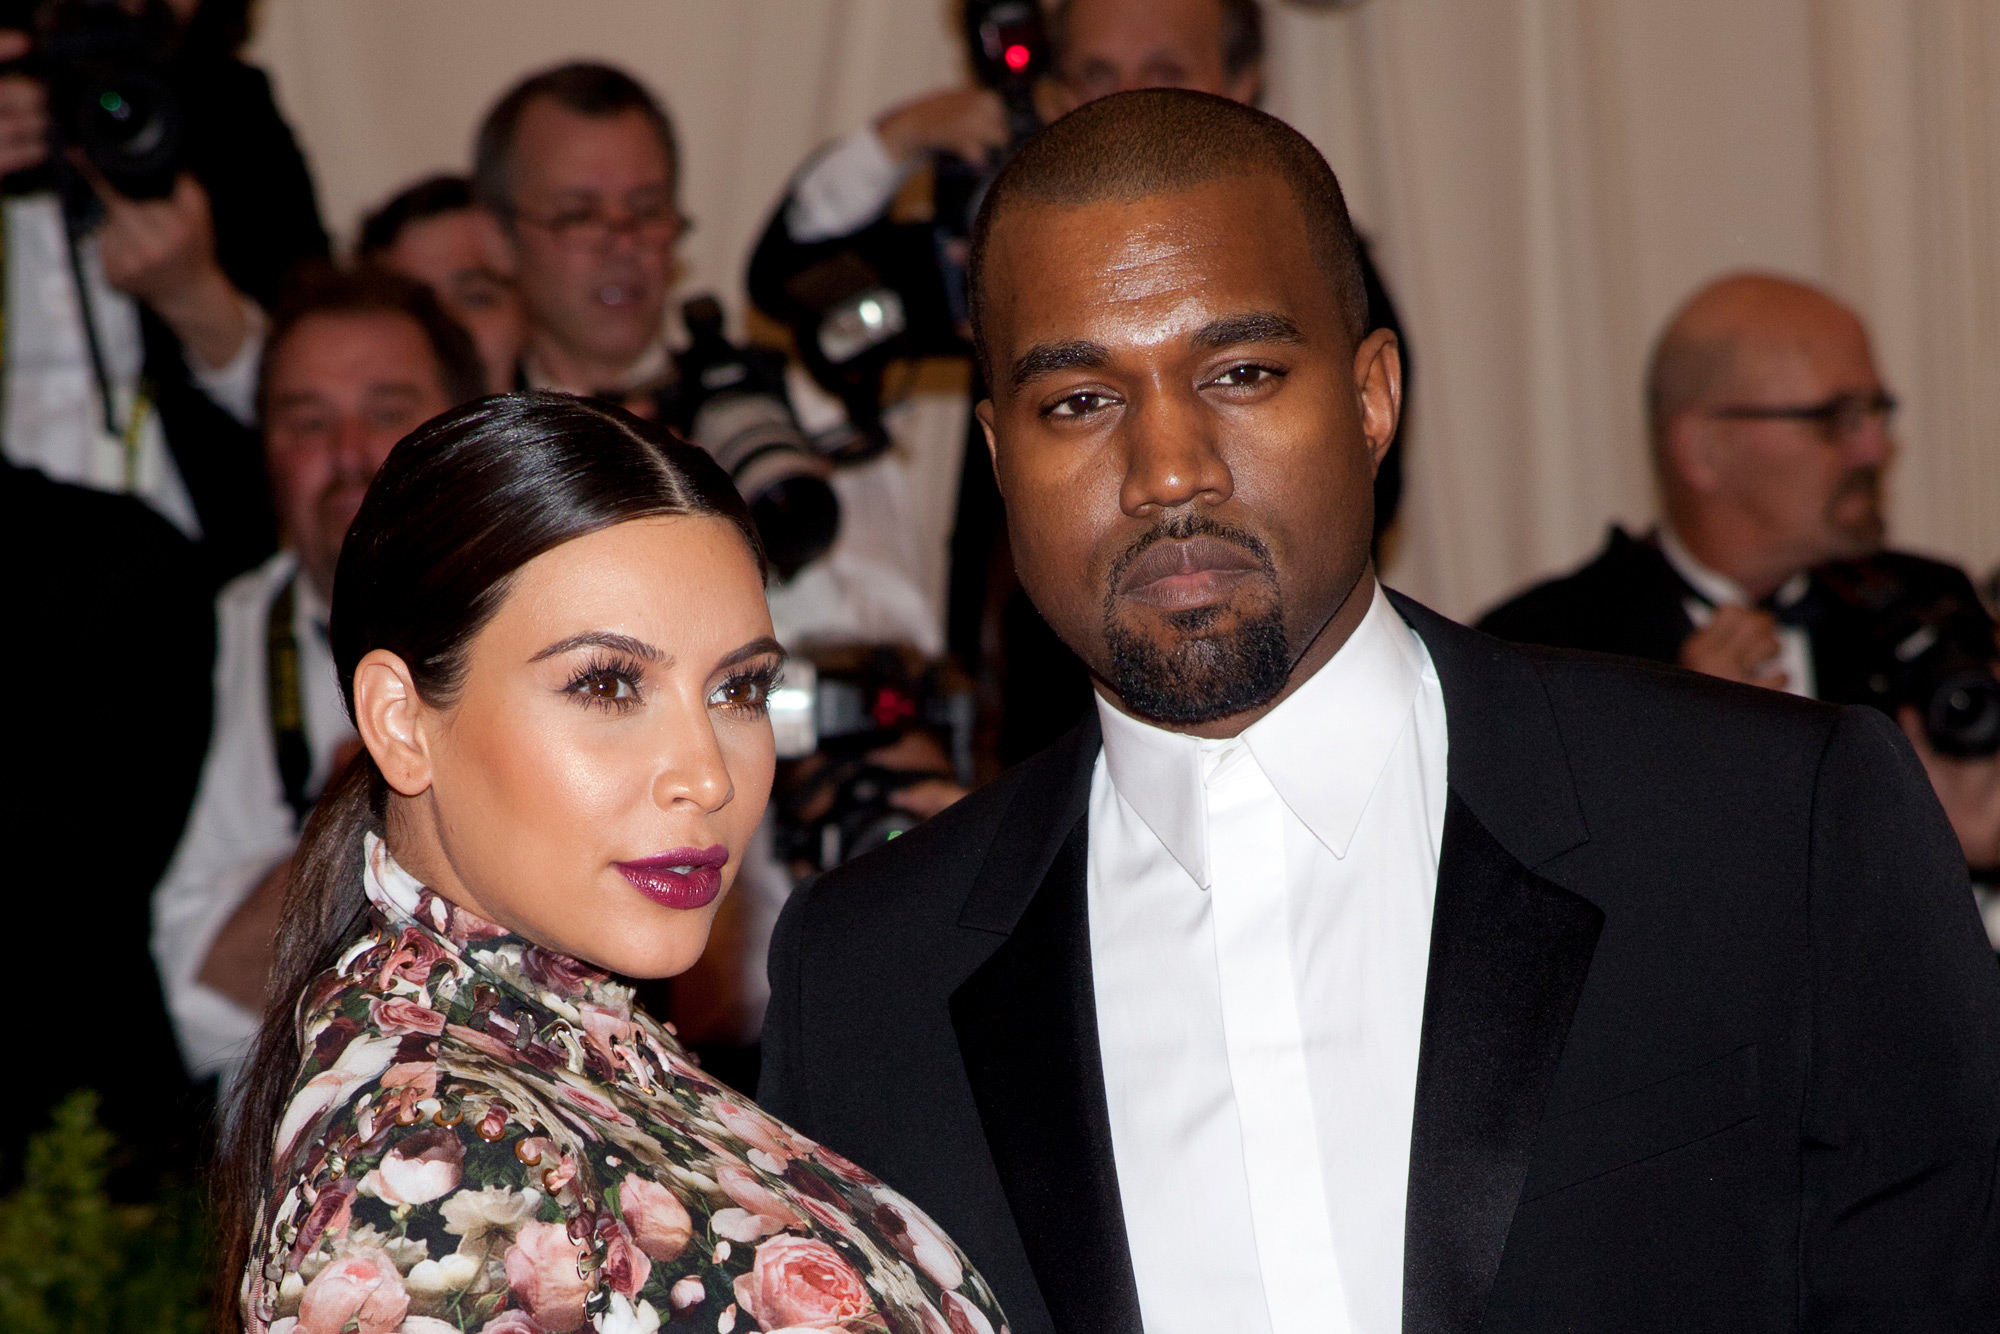 Pregnant Kim Kardashian cried after her first Met Gala in 2013